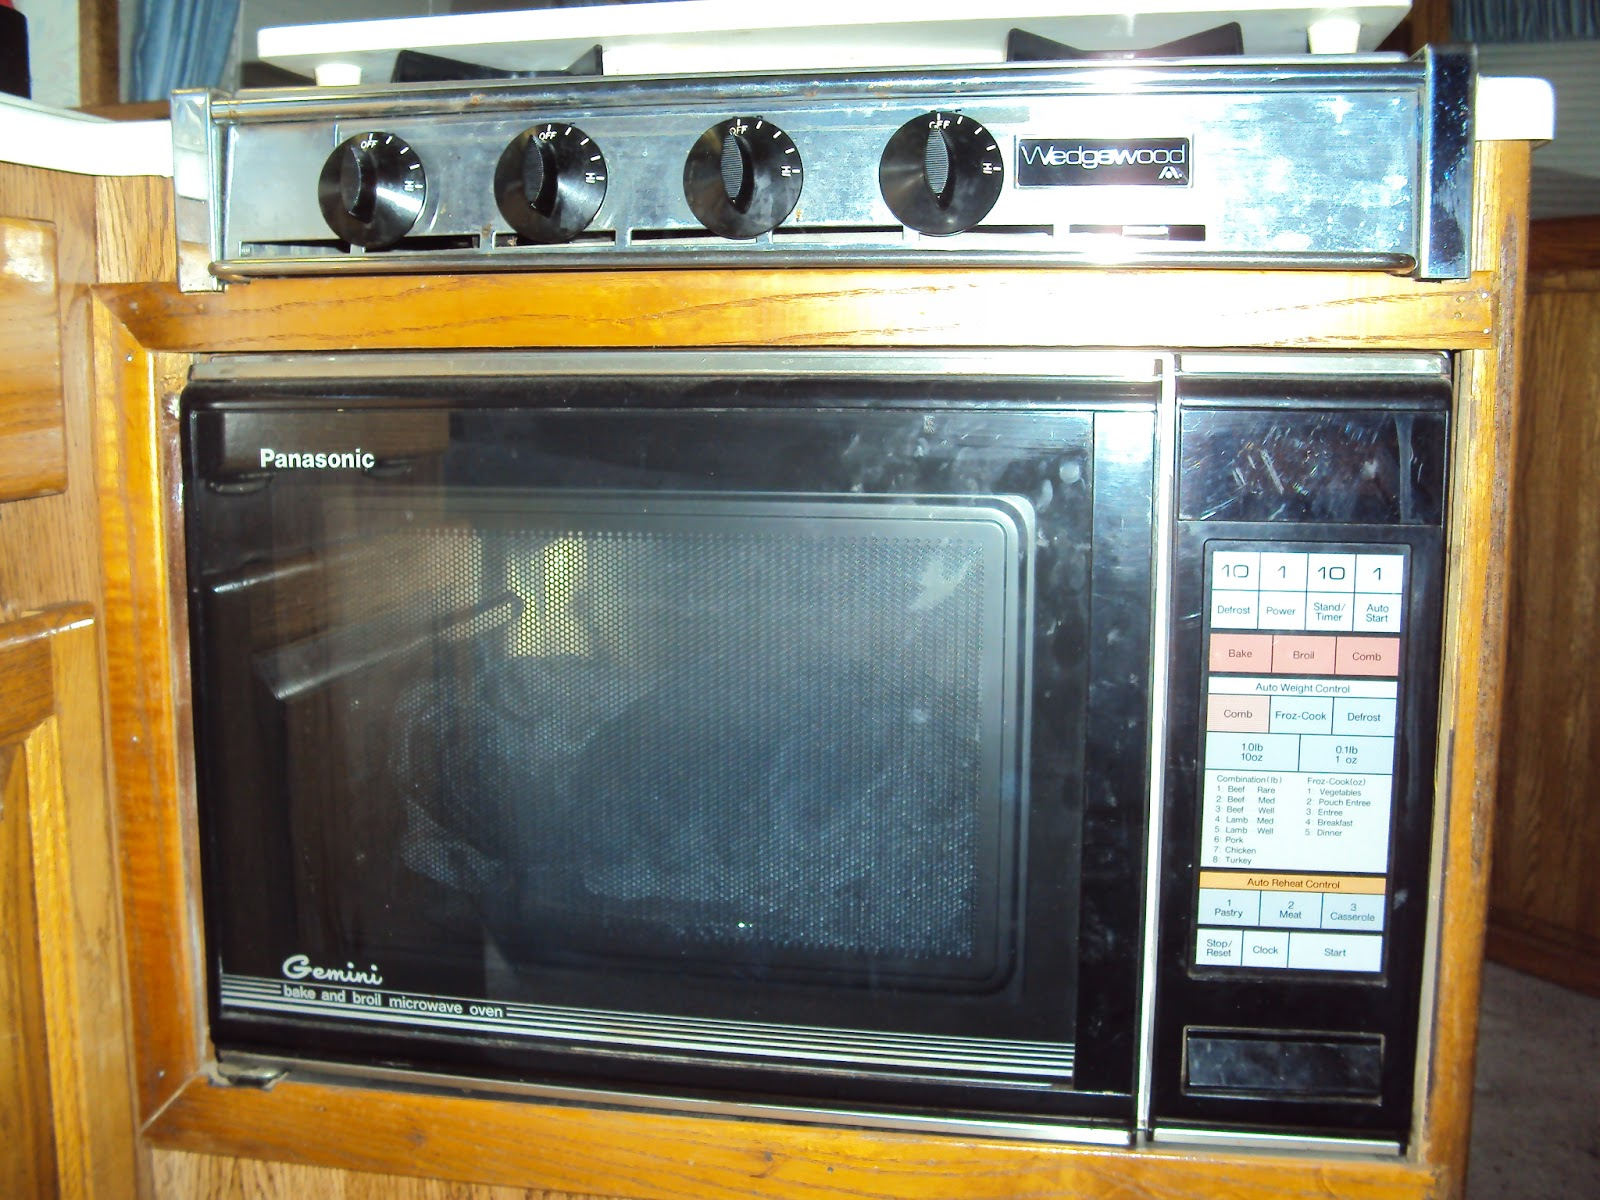 wanderman old time oven or convection microwave. Black Bedroom Furniture Sets. Home Design Ideas